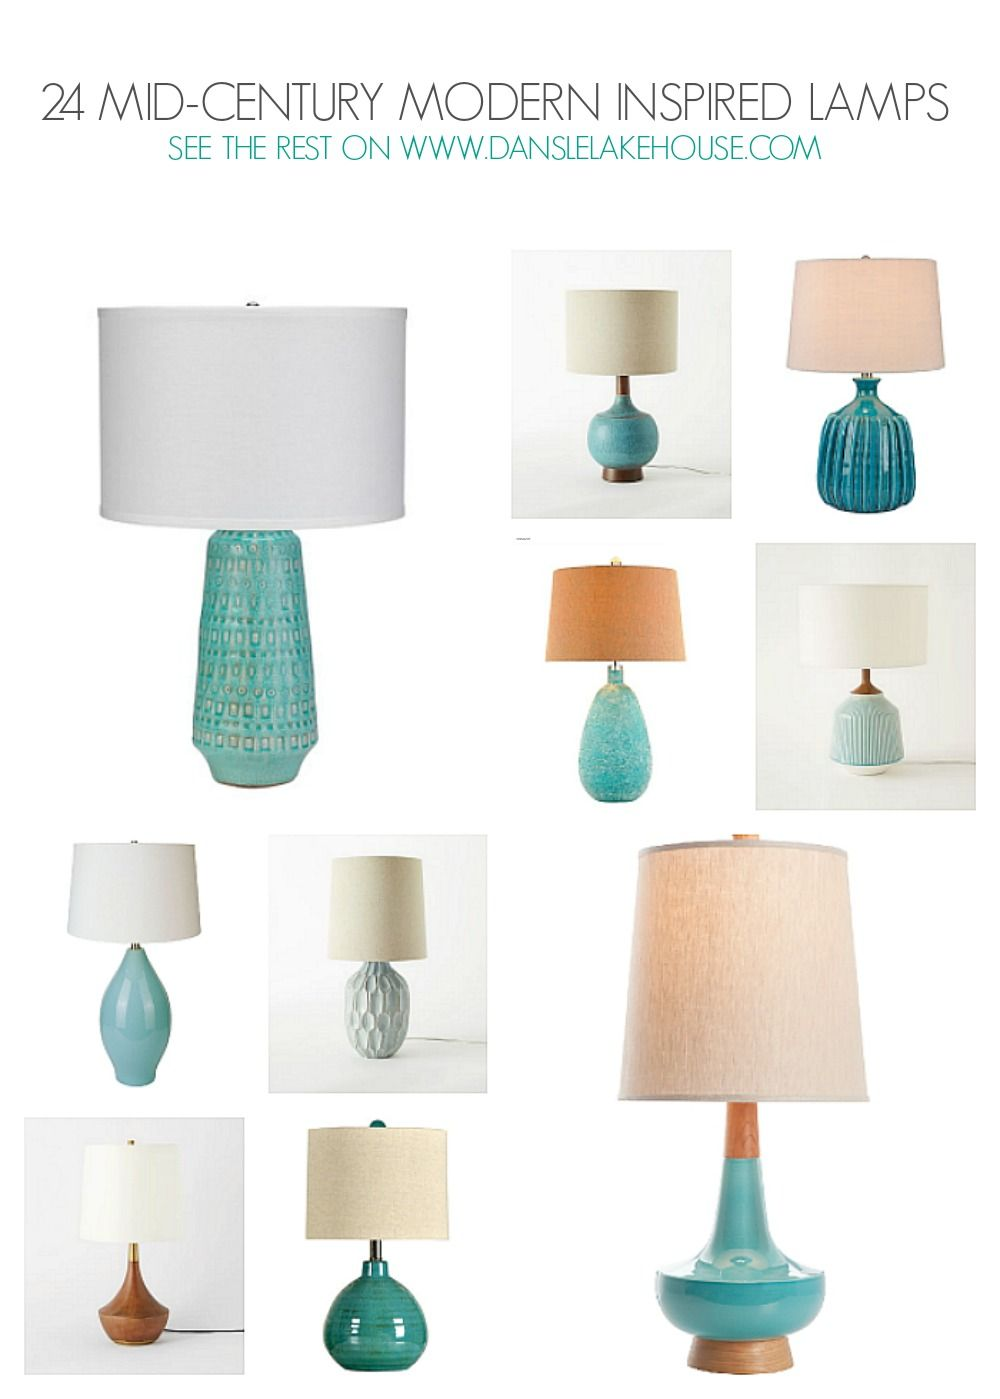 24 Stunning Mid Century Inspired Table Lamps   Lots Of Turquoise Table Lamps  In This